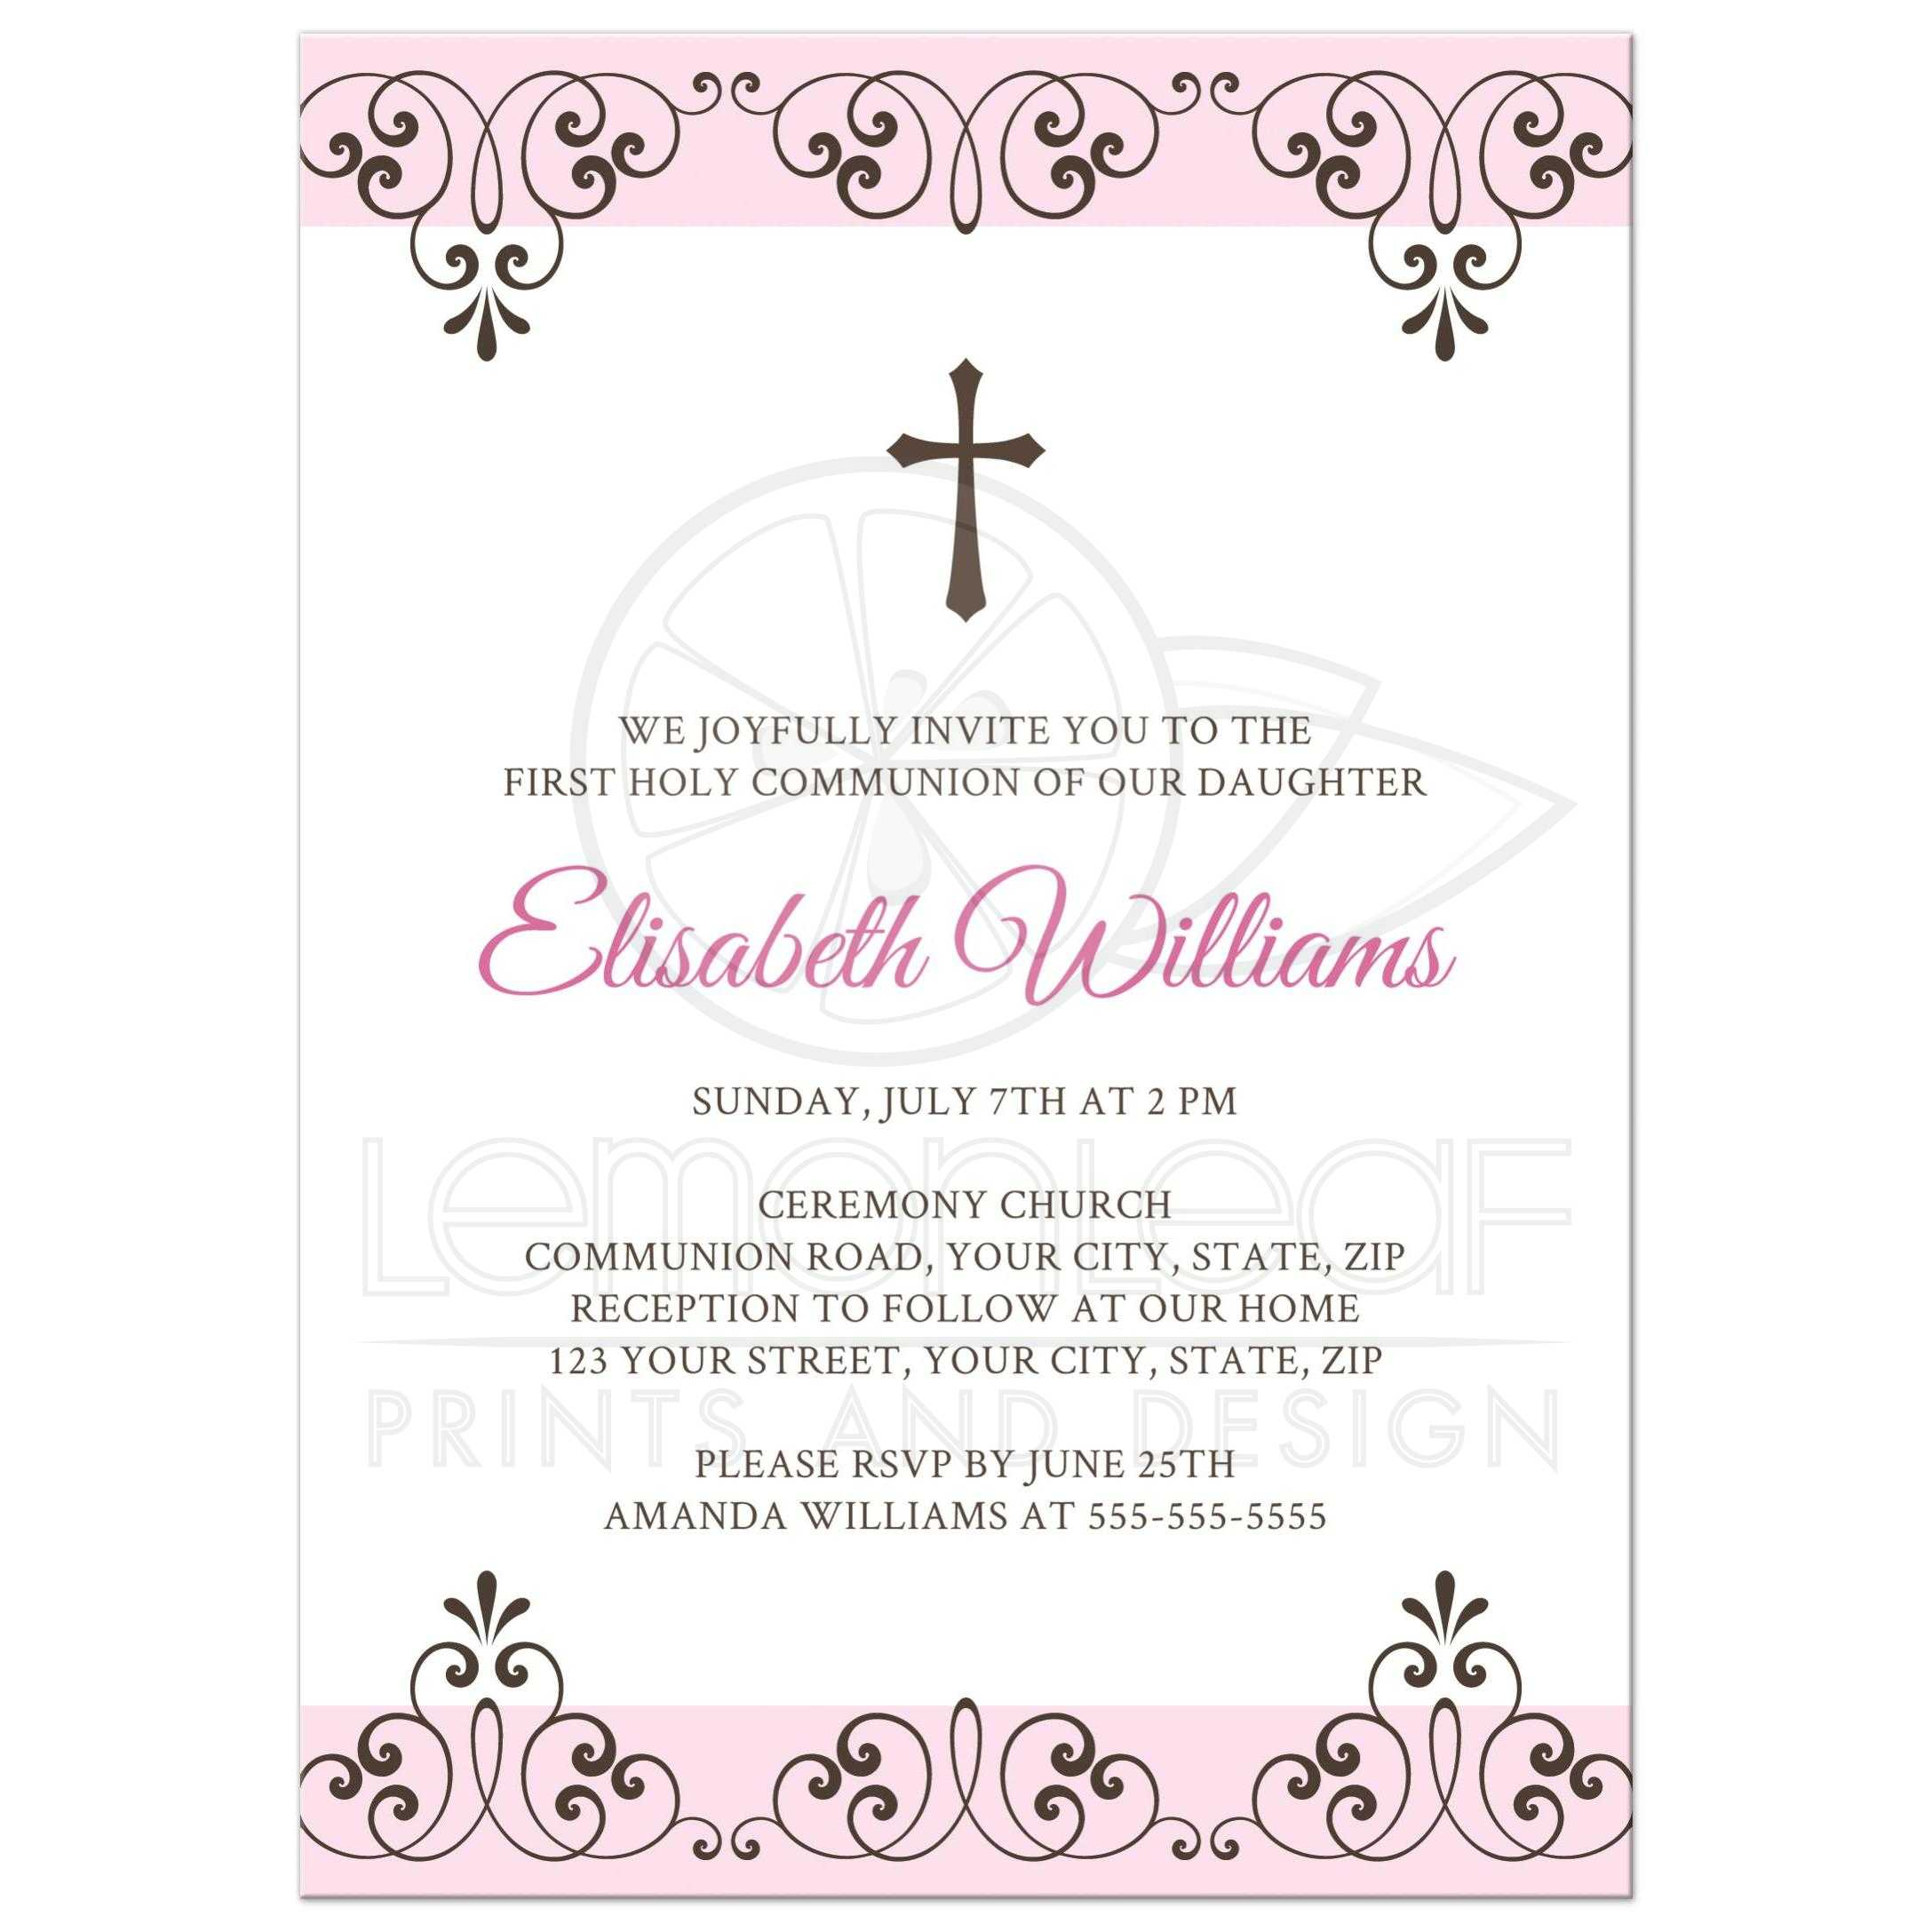 Pale pink and brown First Holy Communion invitation with ornate borders